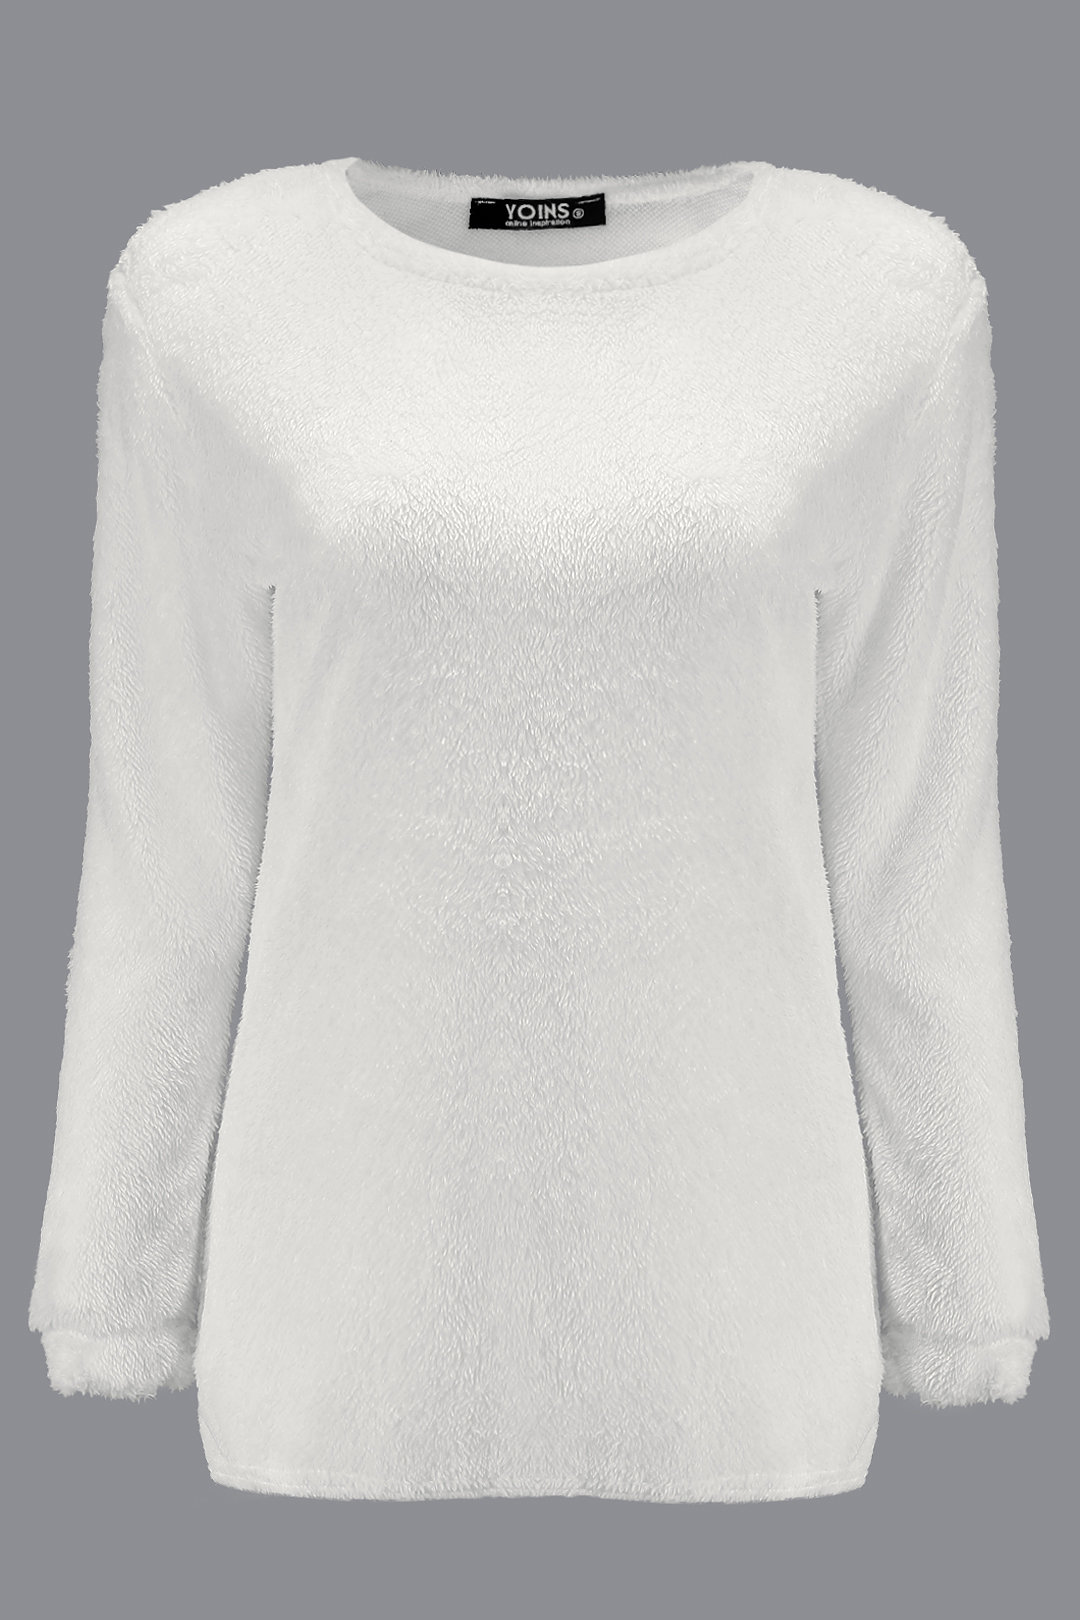 White Round Neck Long Sleeves Sweater Top